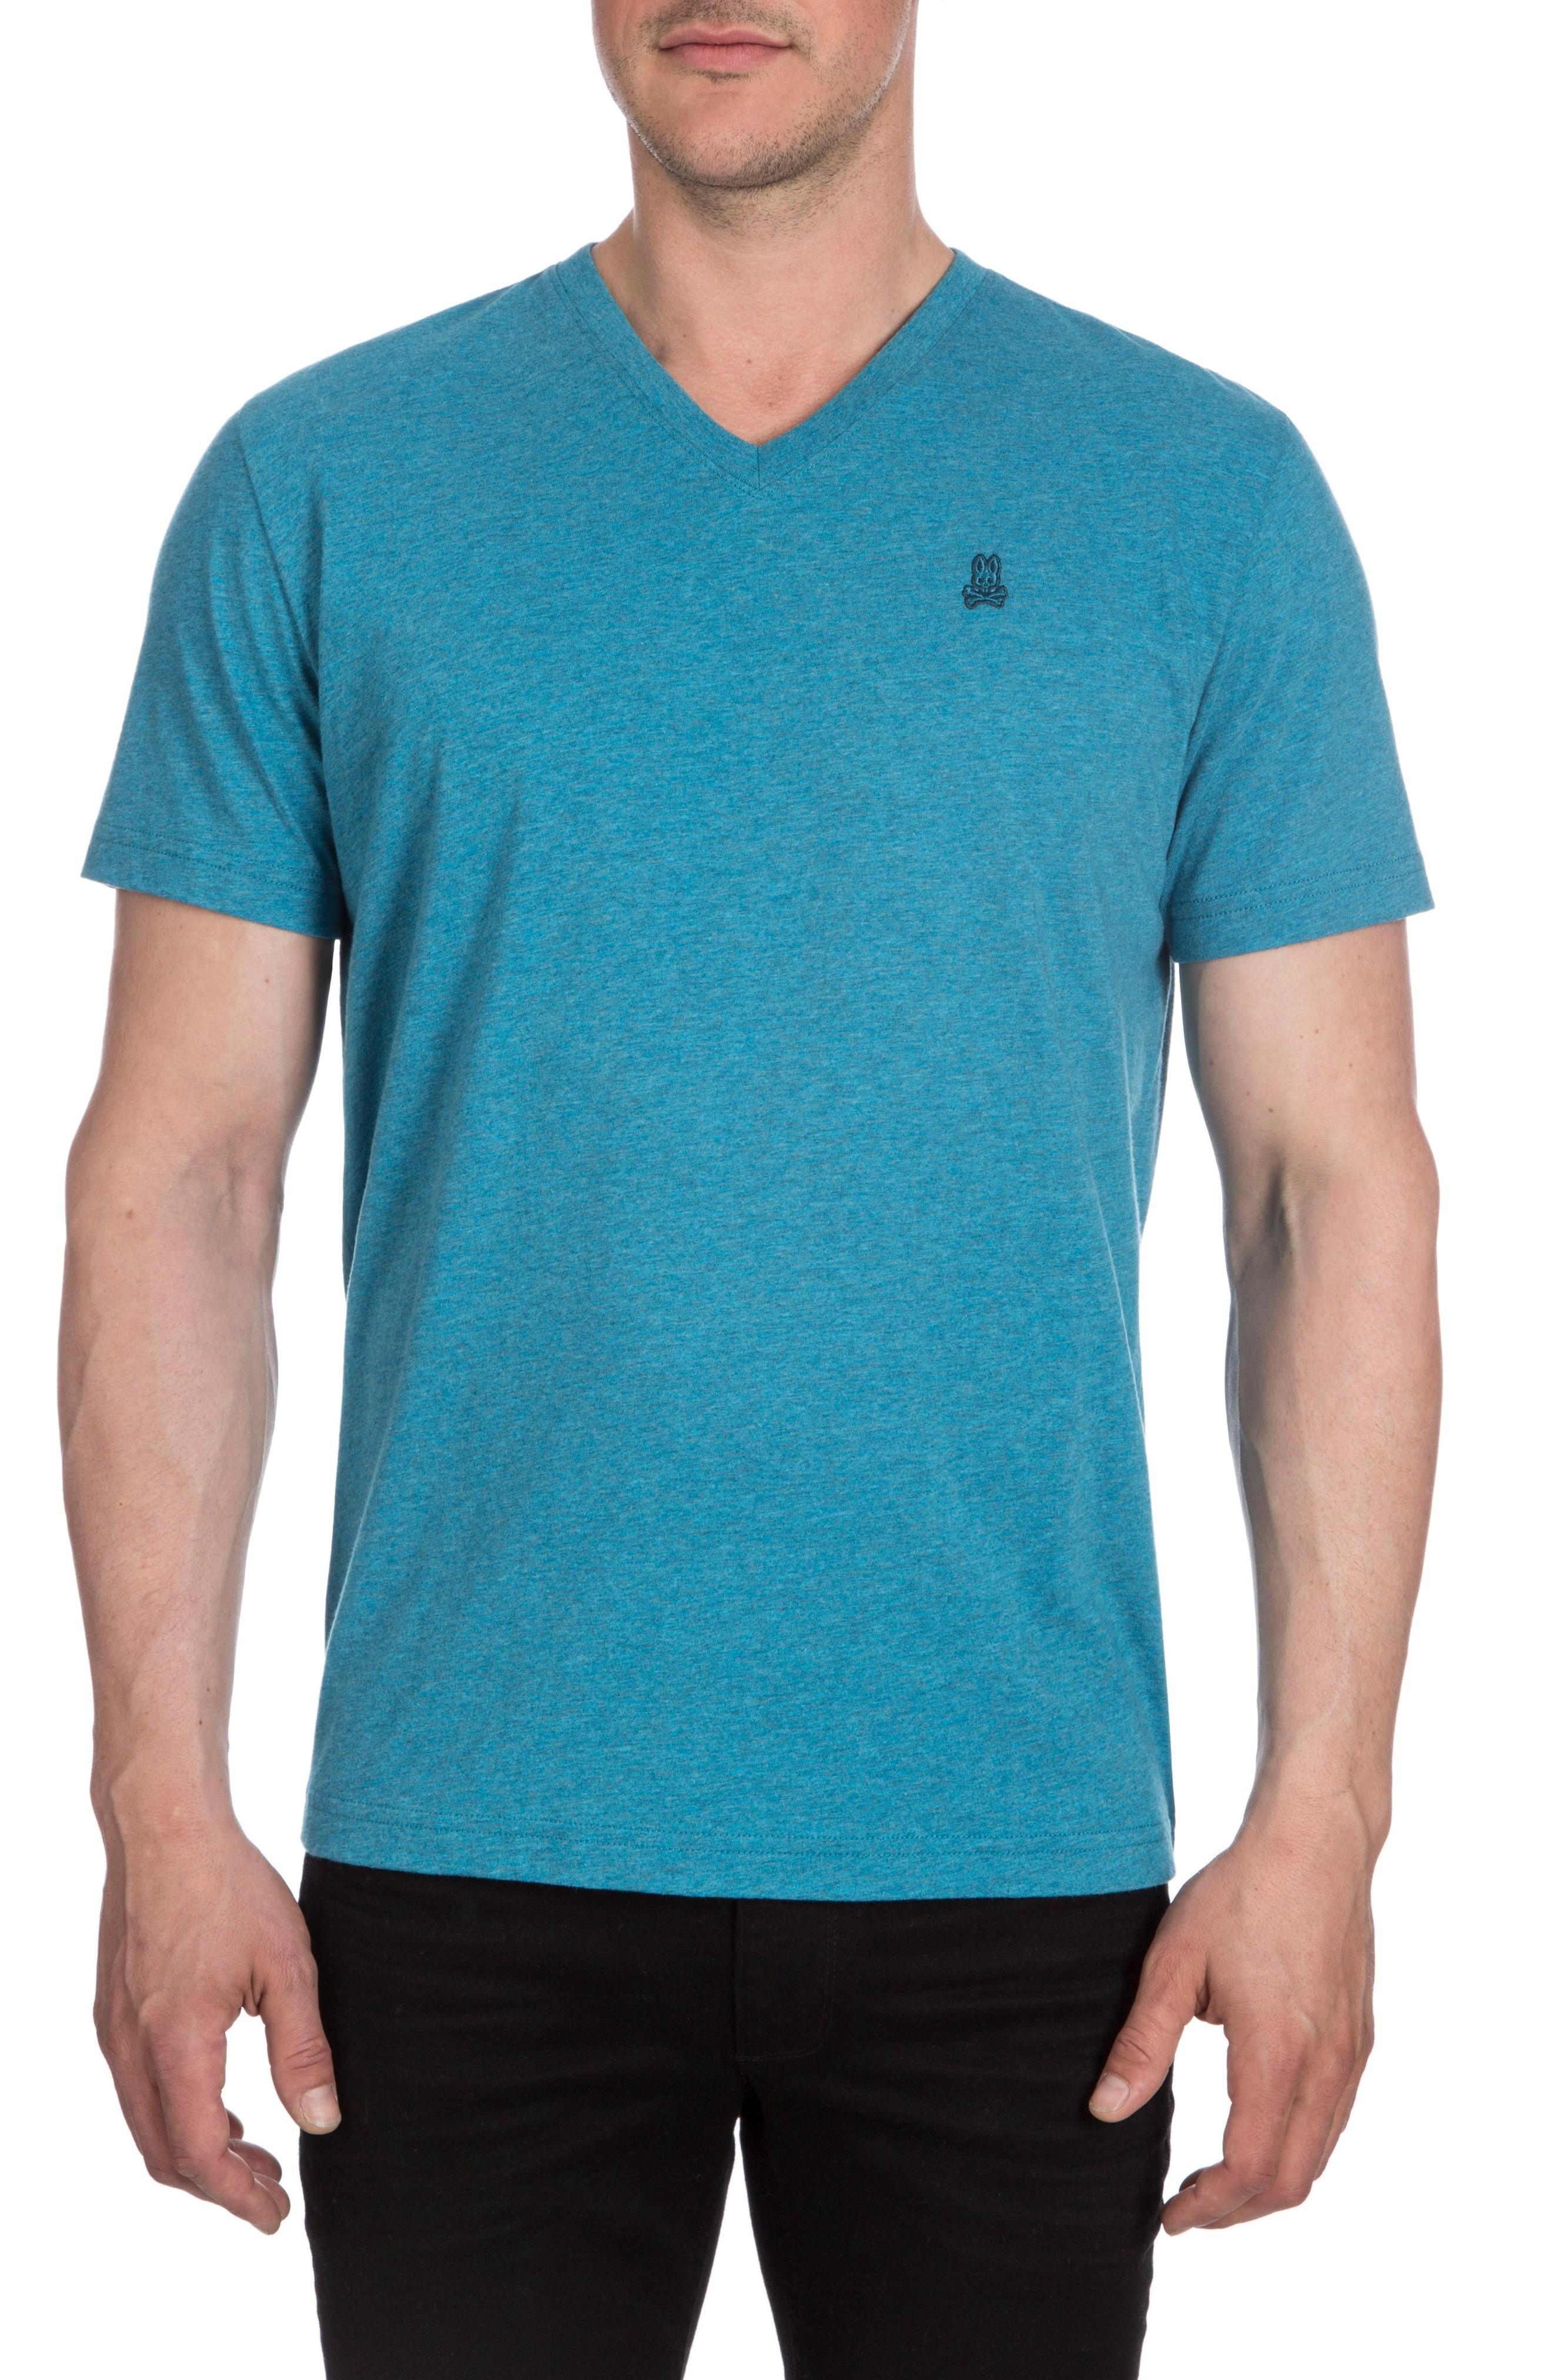 Psycho Bunny V-neck T-shirt In Heather Teal